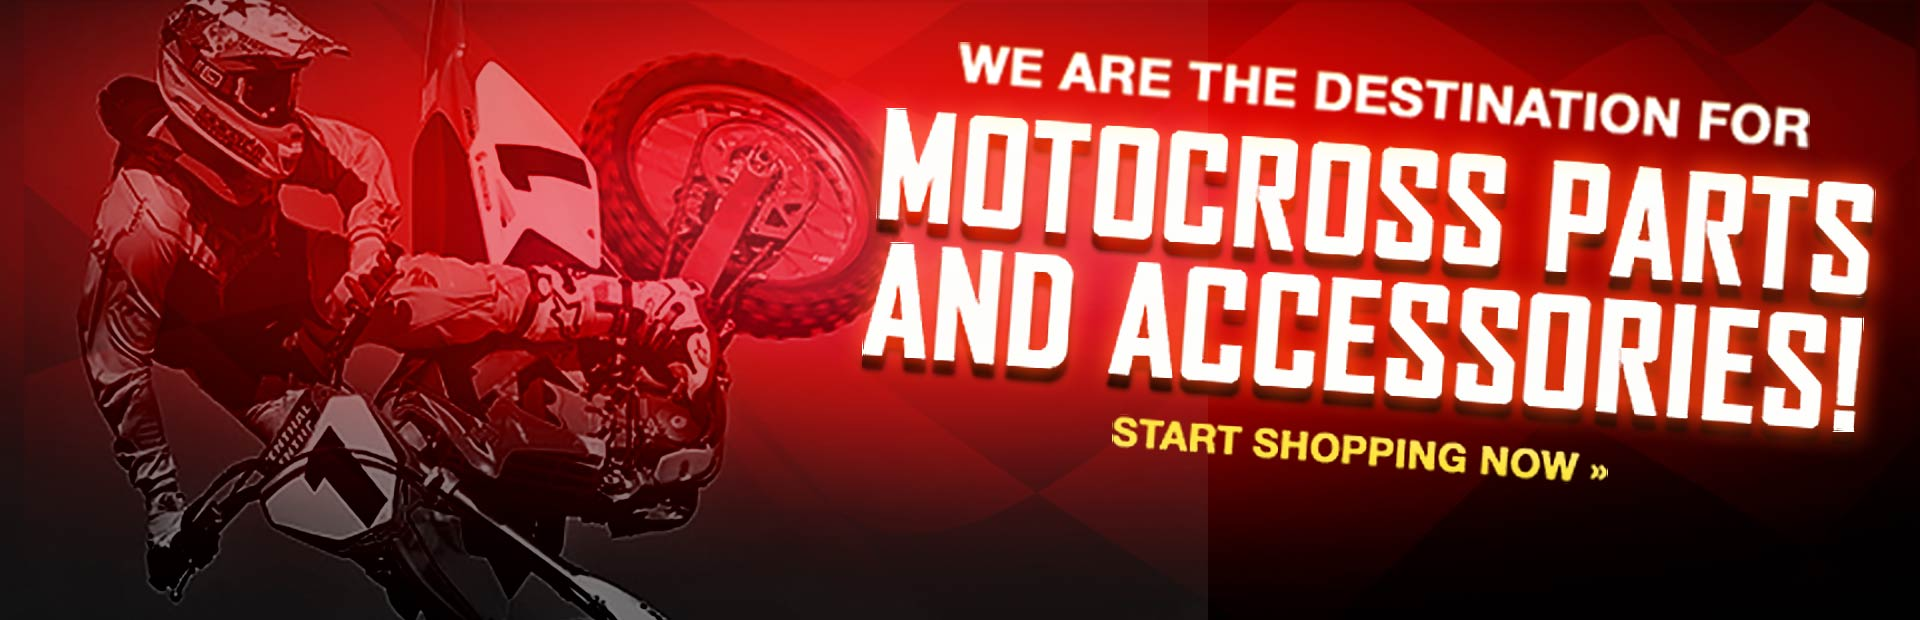 We are the destination for motocross parts and accessories. Click here to start shopping.